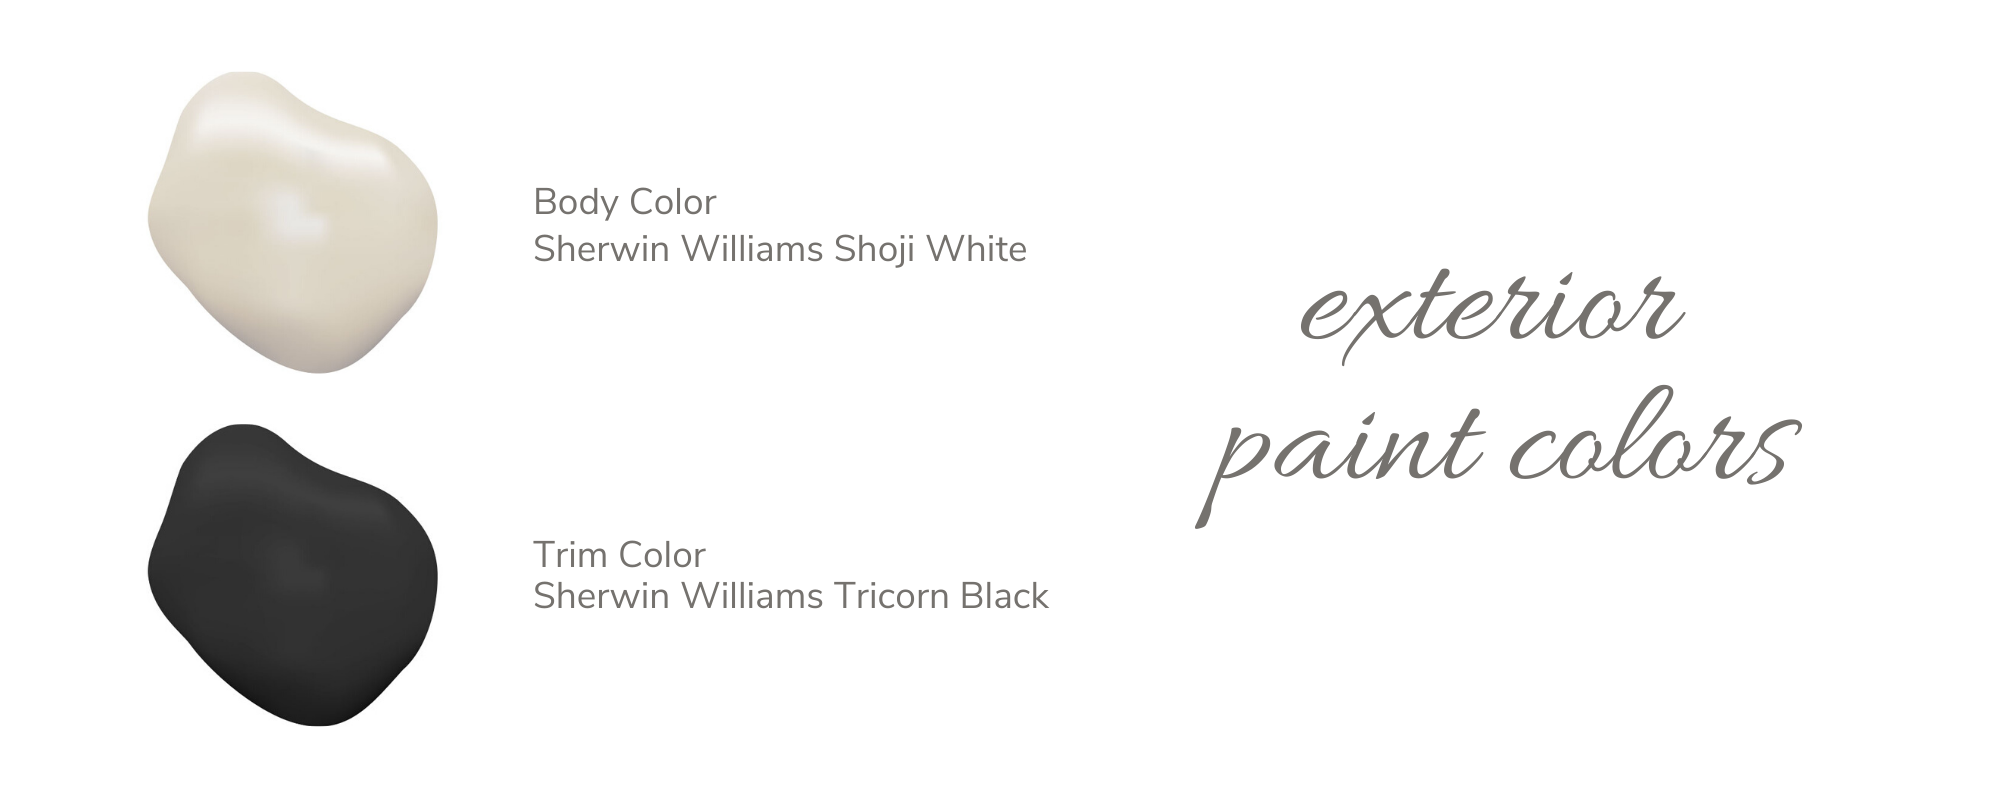 Exterior Paint Colors - White and Black